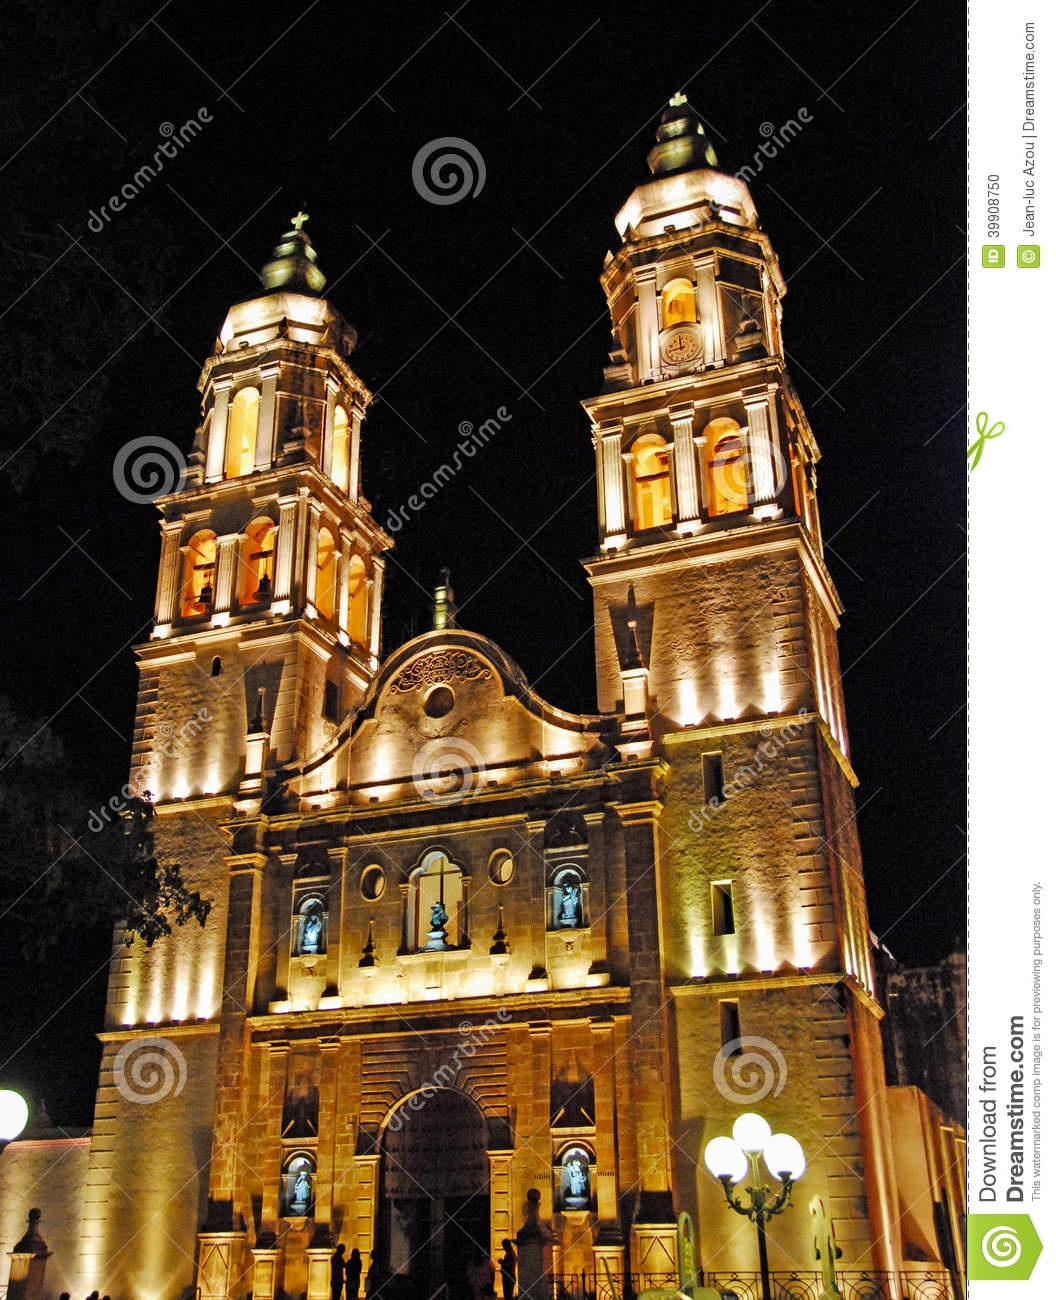 Cathedral of the Immaculate Conception in Campeche